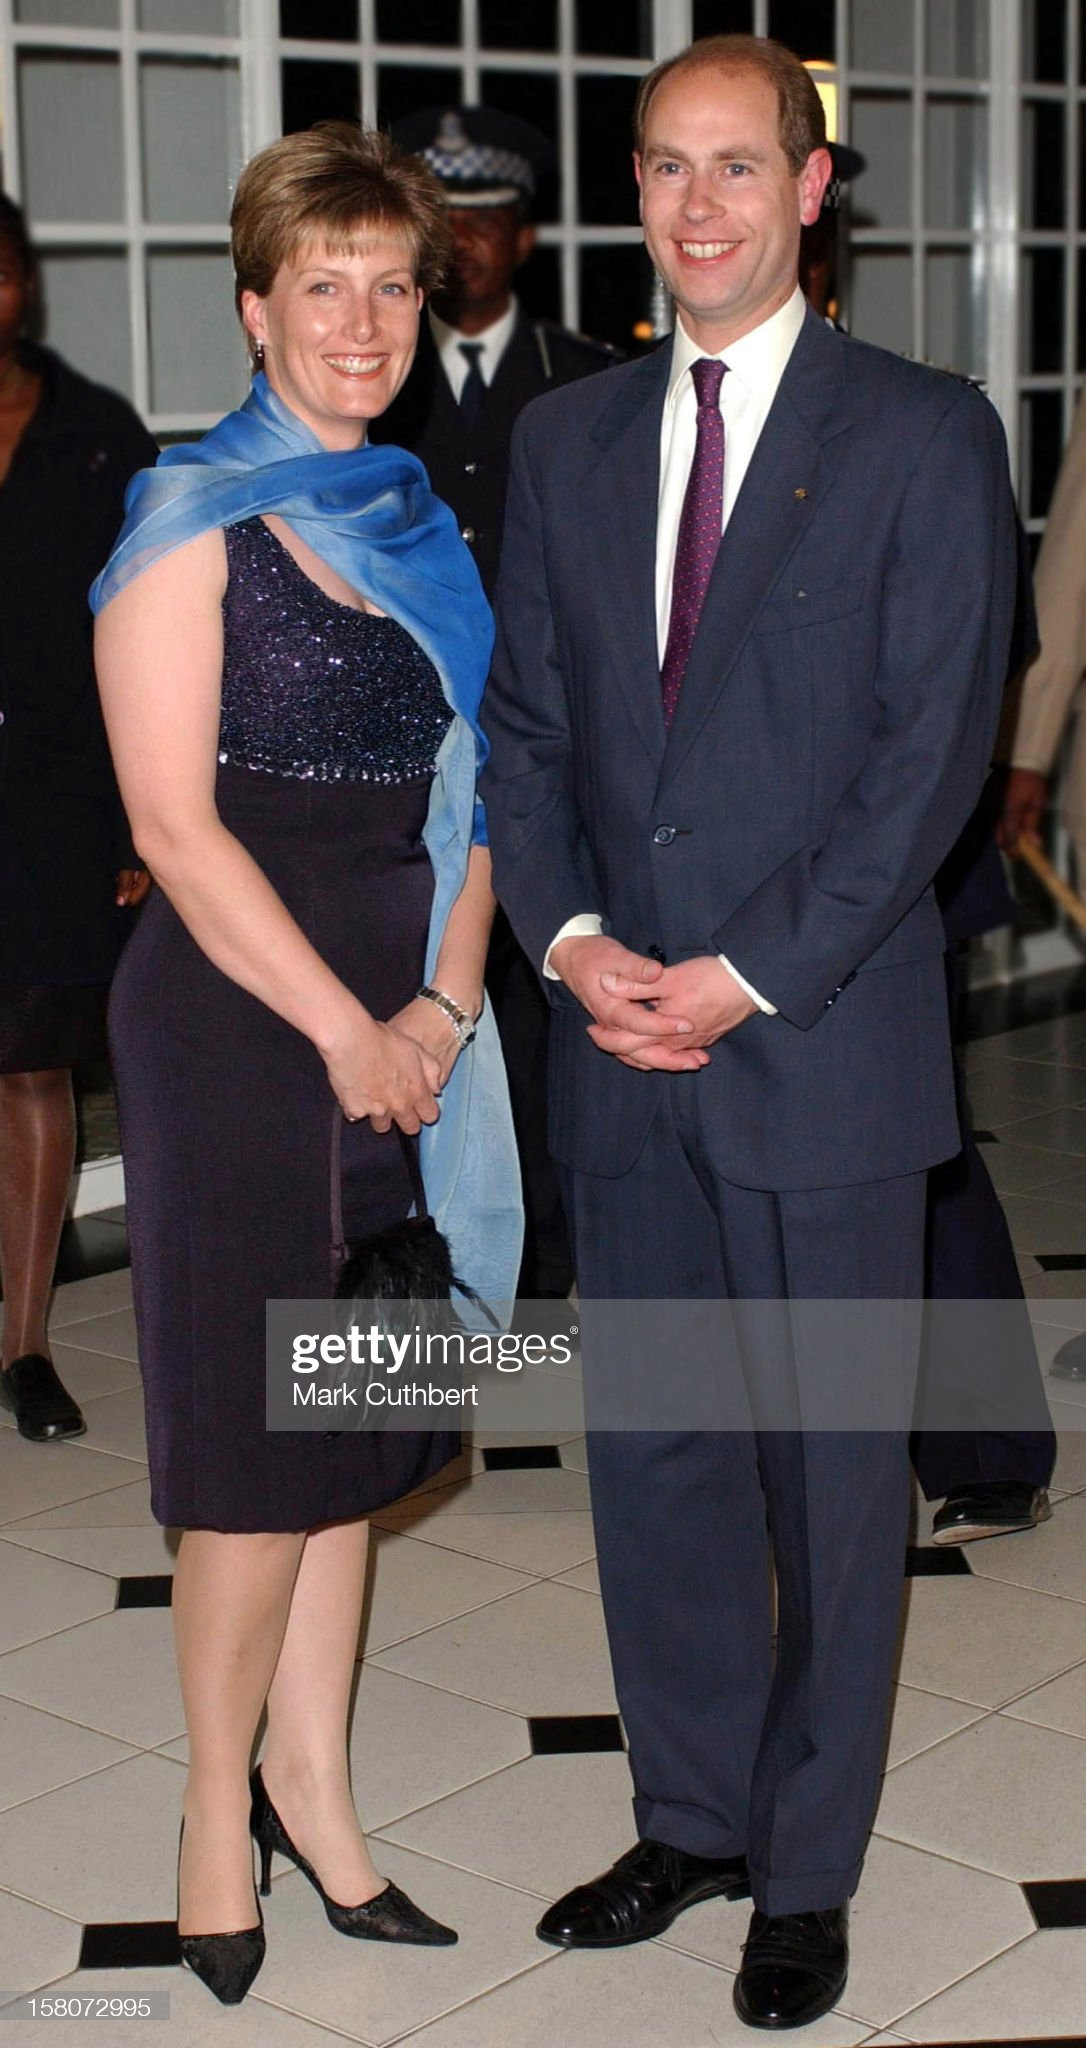 The Earl & Countess Of Wessex Visit Swaziland. : News Photo